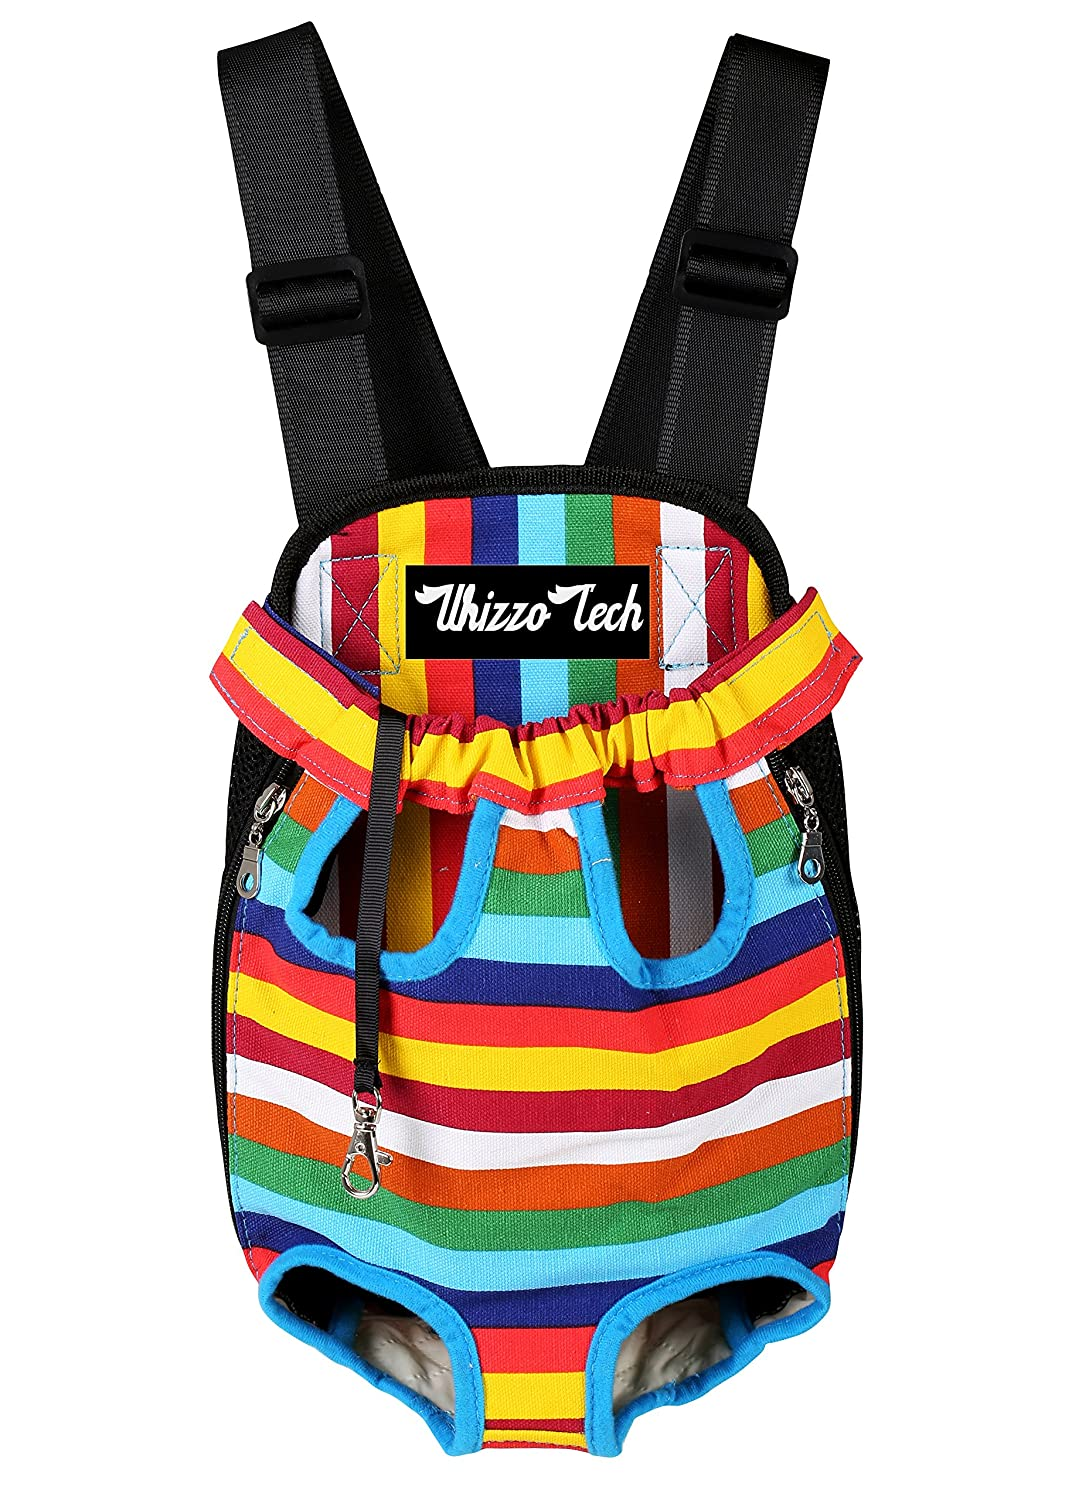 Rainbow L Rainbow L Whizzotech Pet Carrier Backpack, Adjustable Pet Front Cat Dog Carrier Backpack Travel Bag, Legs Out, Easy-Fit for Traveling Hiking Camping PB03 (L, Rainbow)